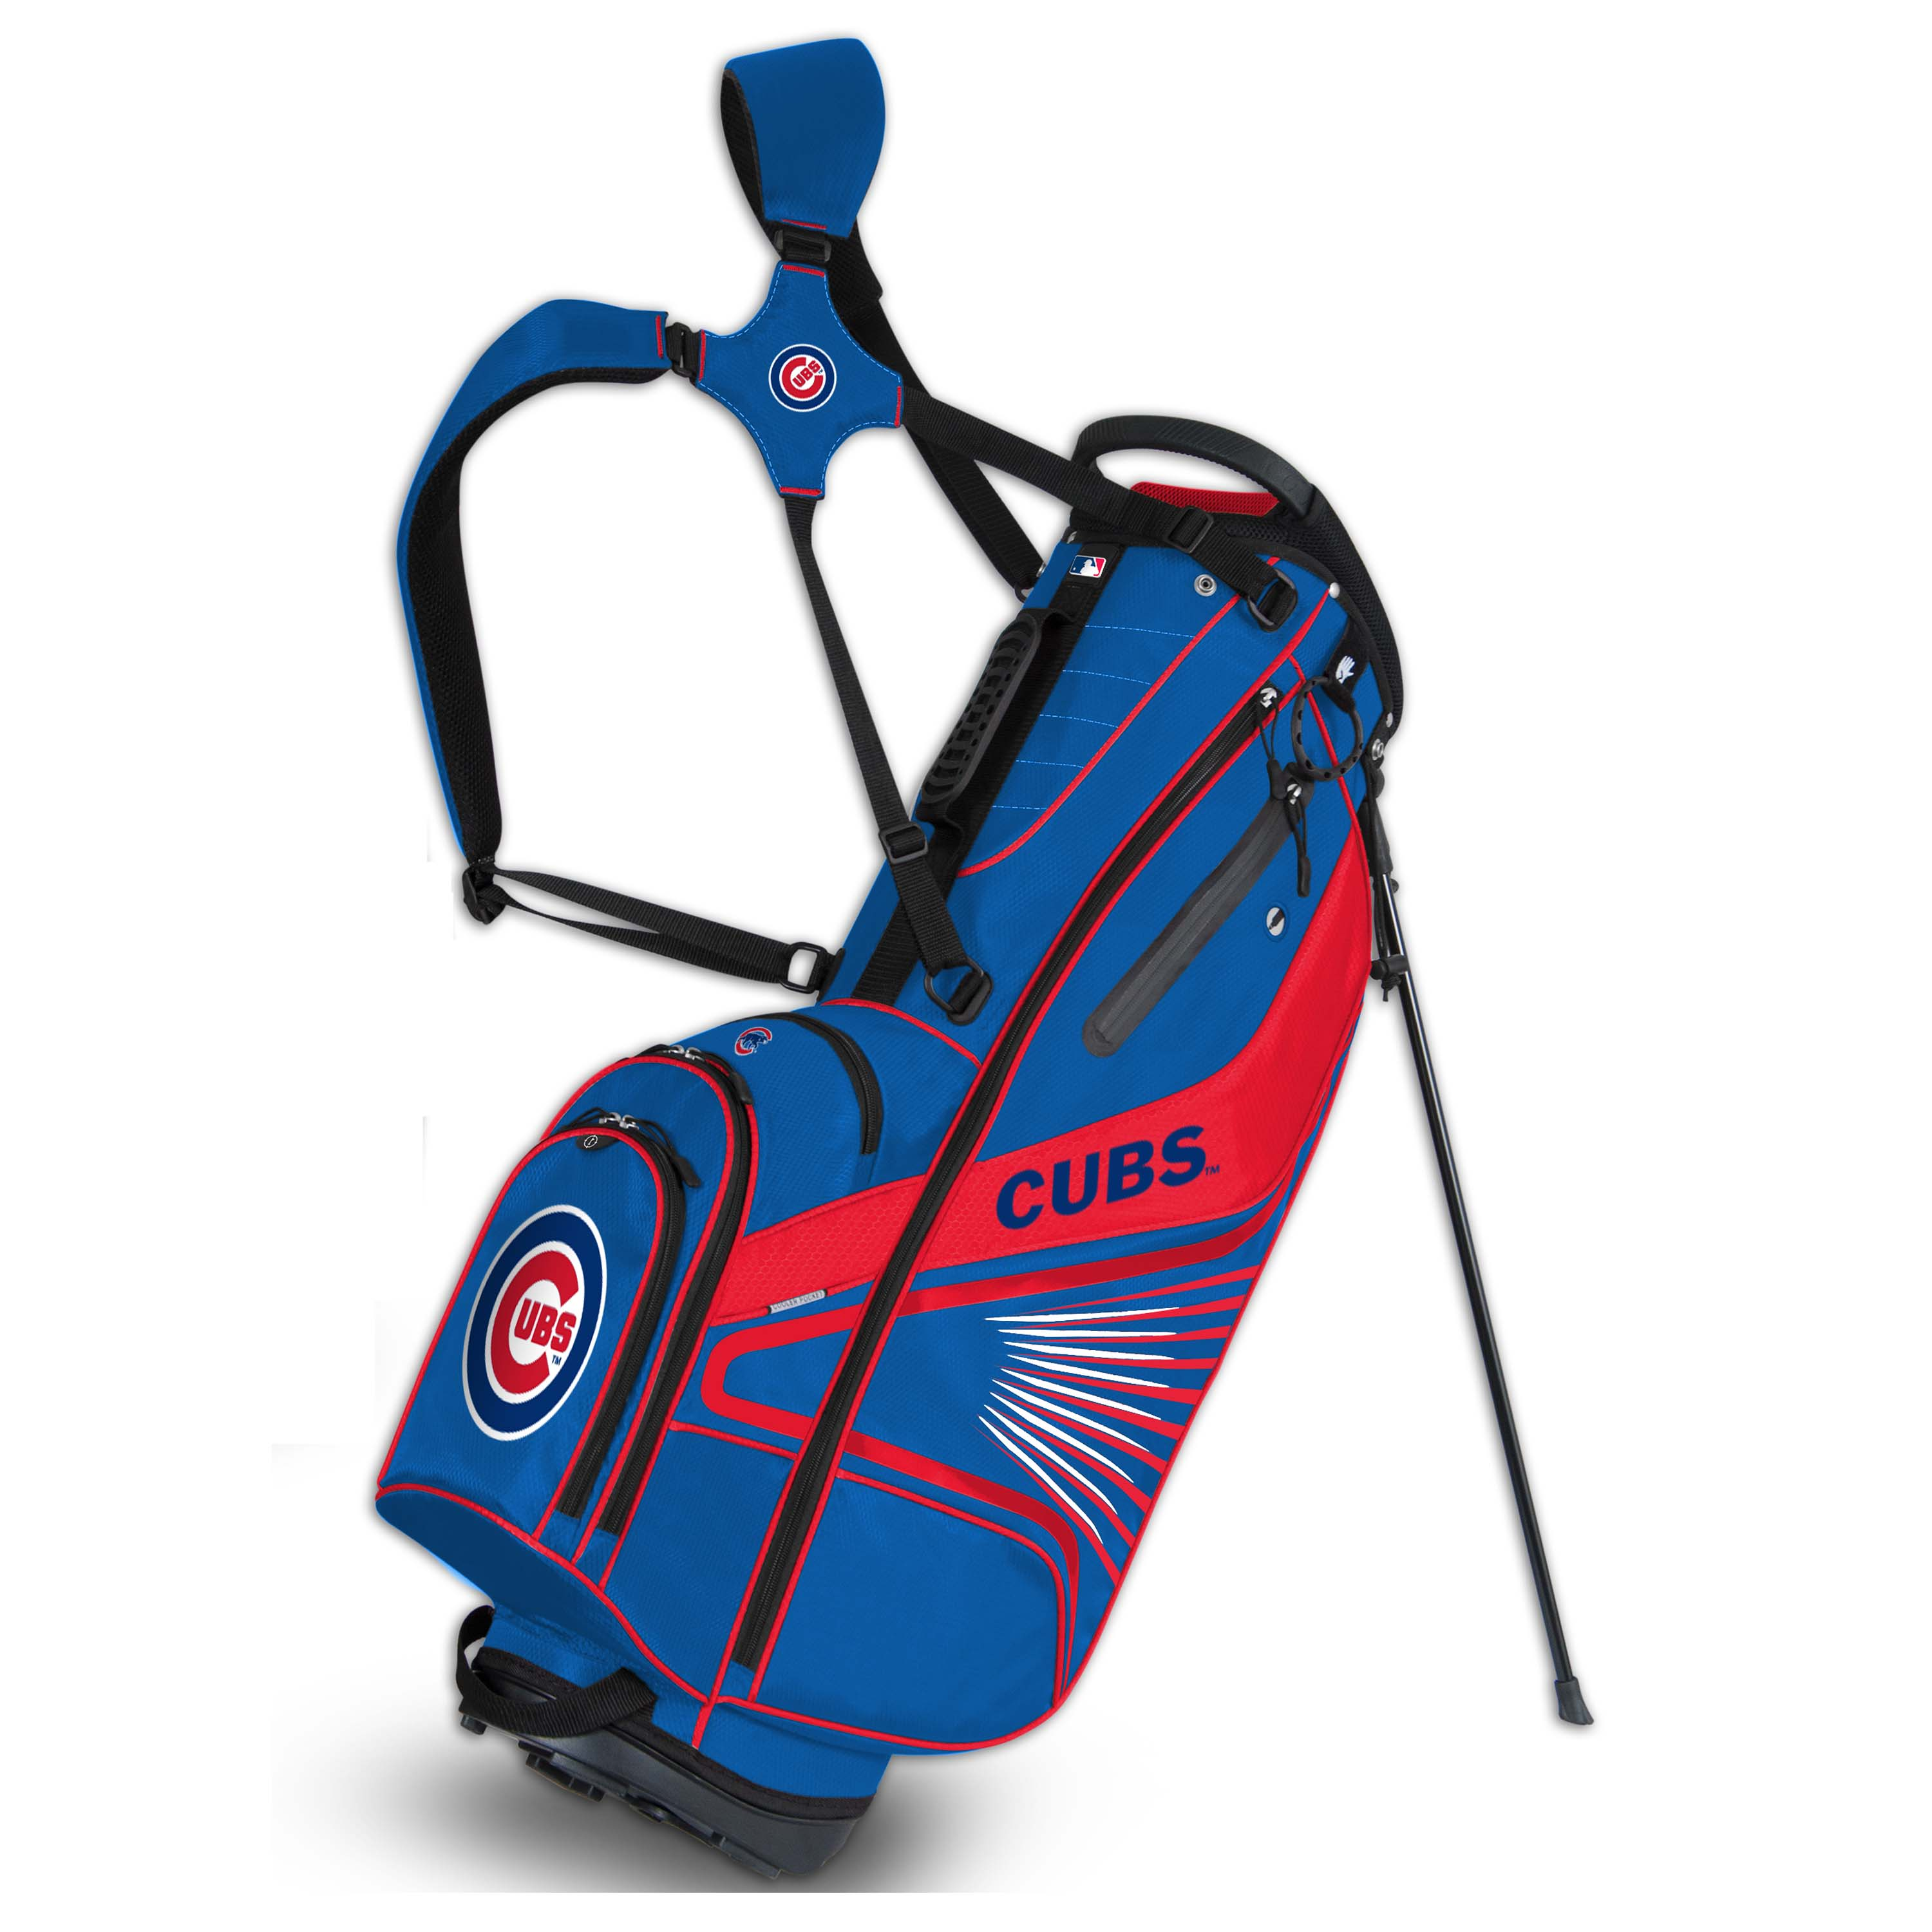 Chicago Cubs Gridiron III Golf Stand Bag - No Size